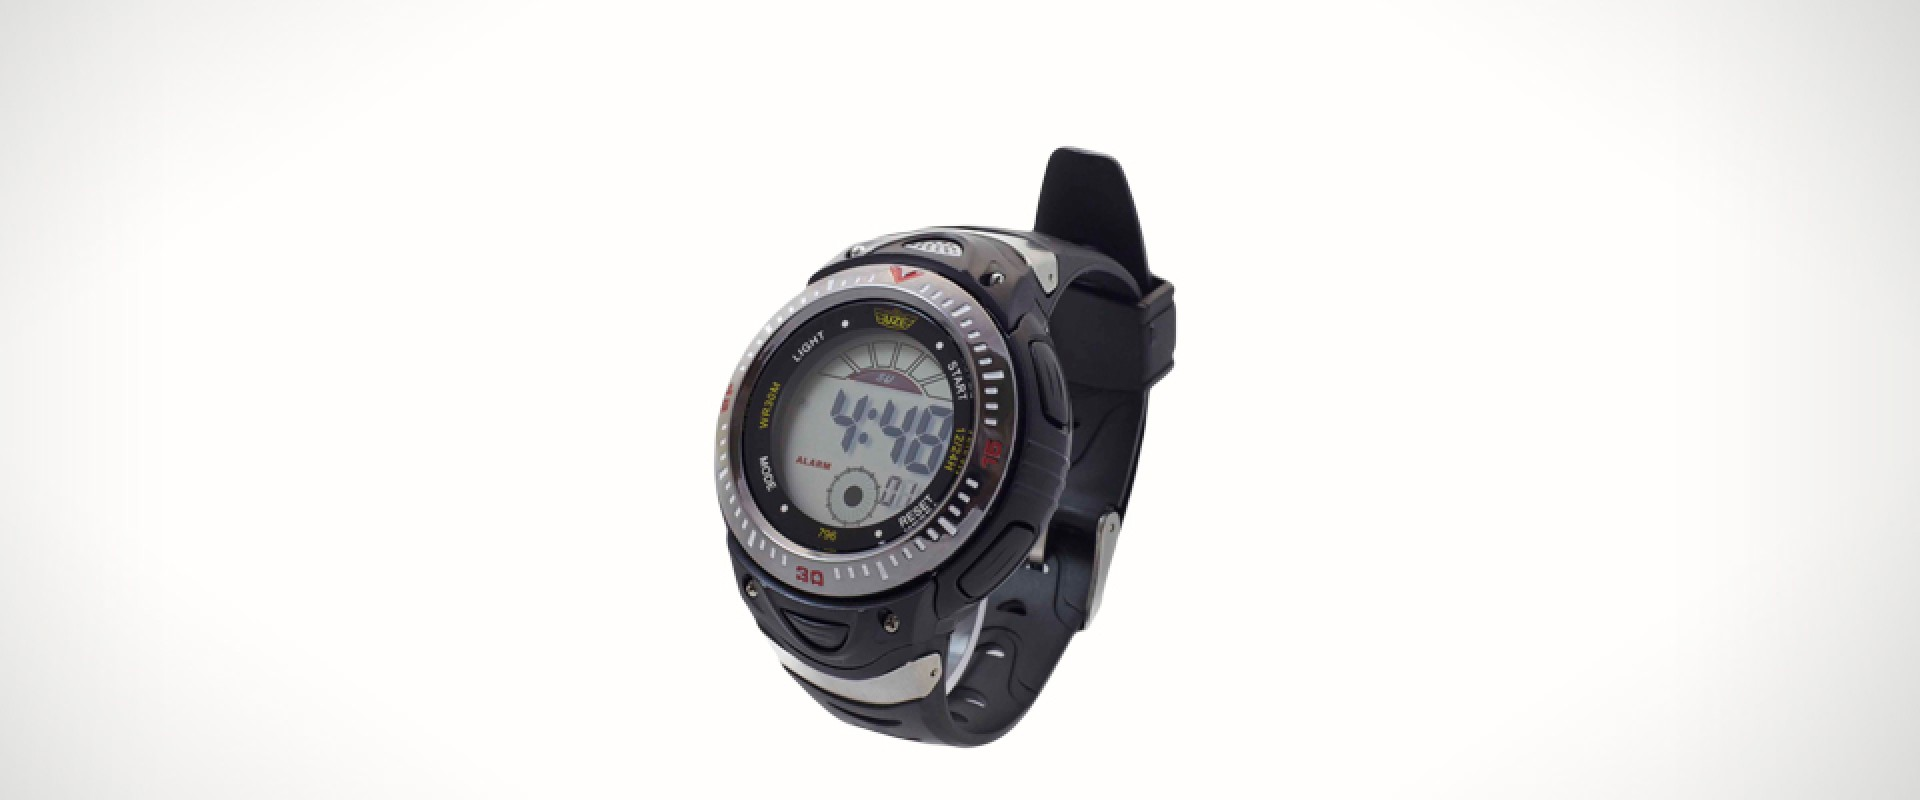 UZI Digital Watch - Rubber Watch